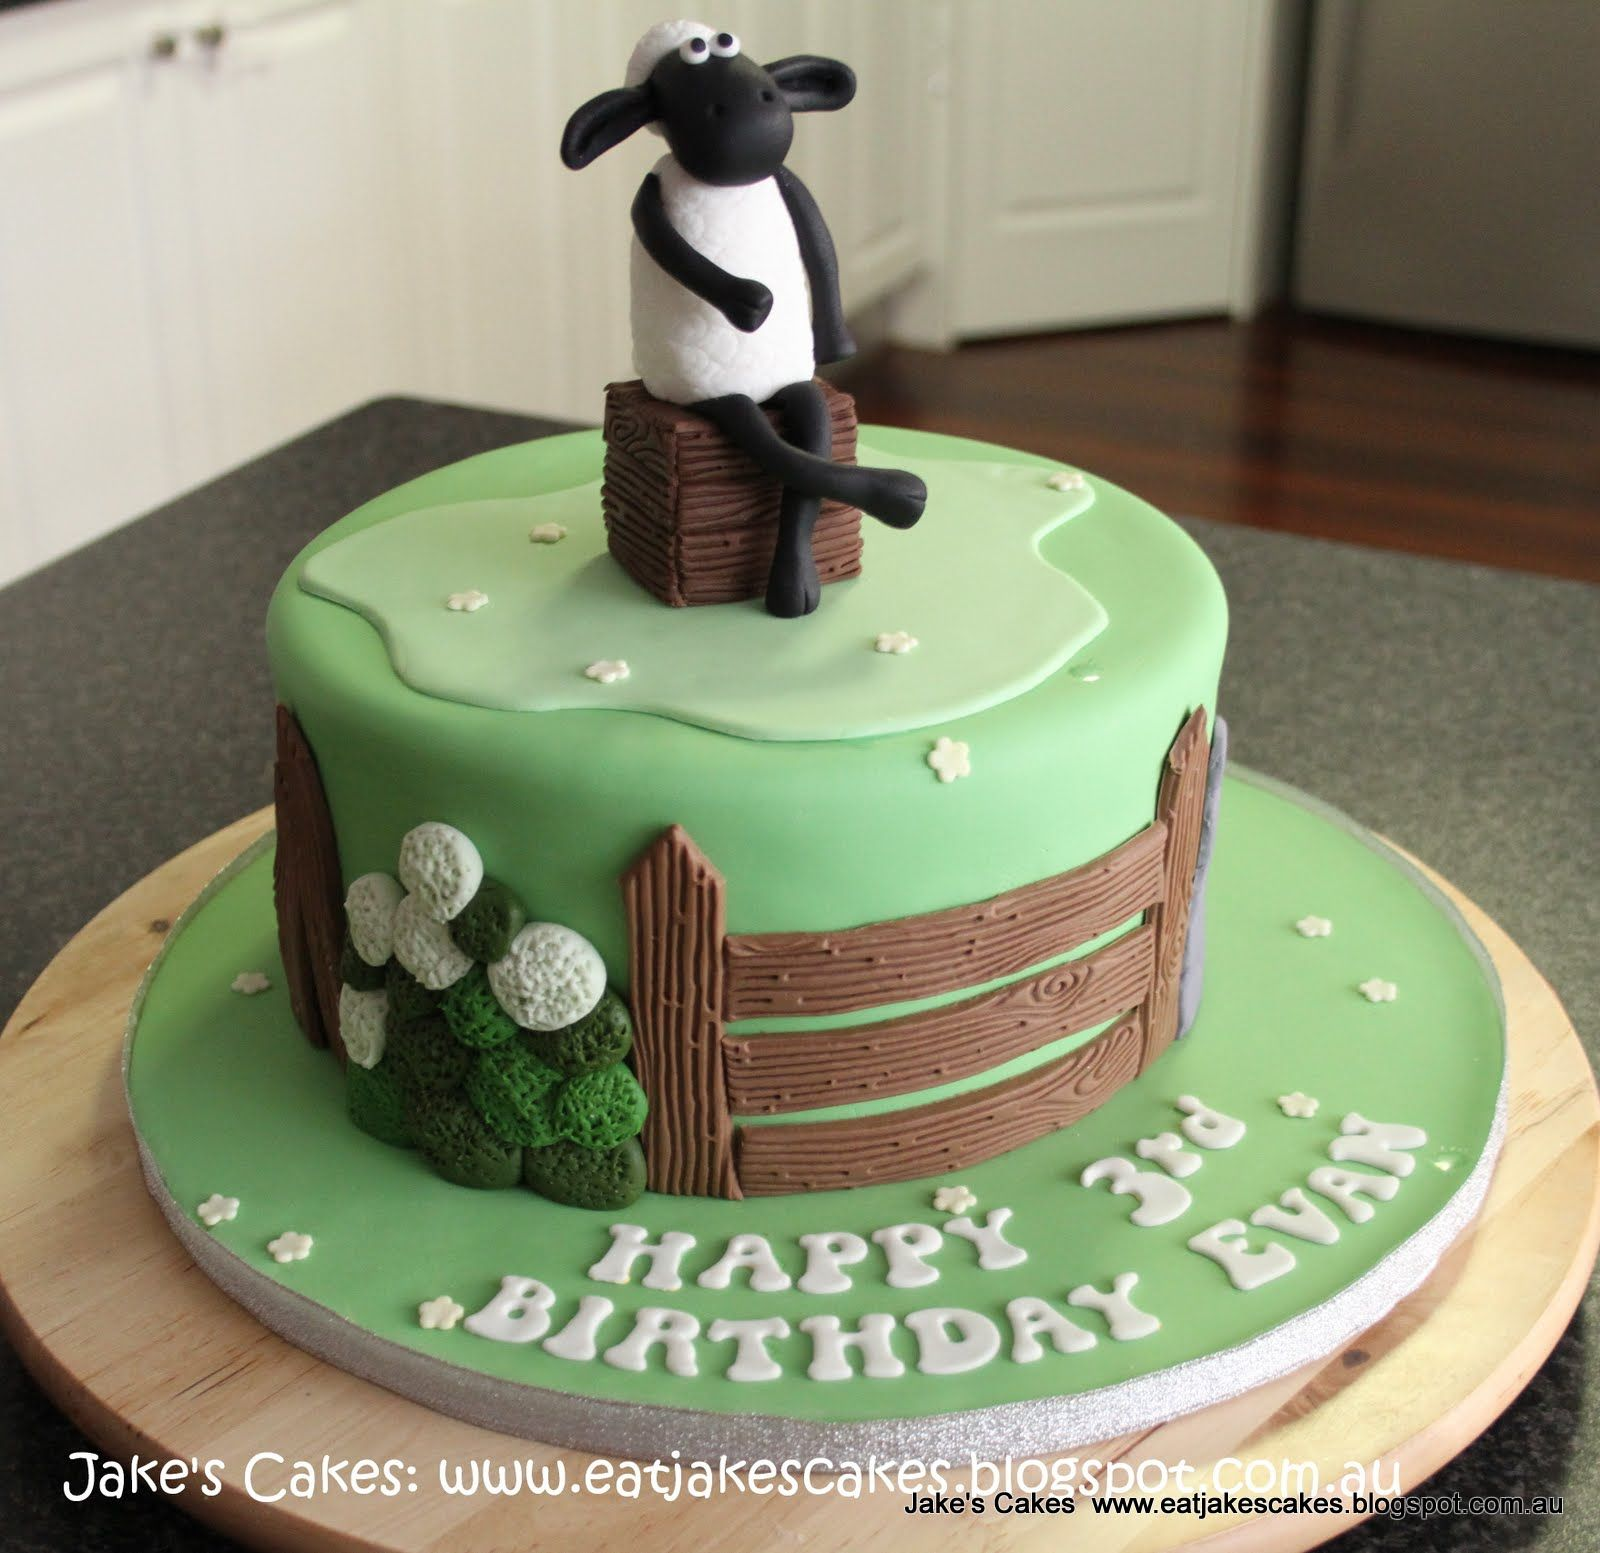 View Thousands Amazing Images On Pixhdercom Pâtisserie - Sheep cakes birthday